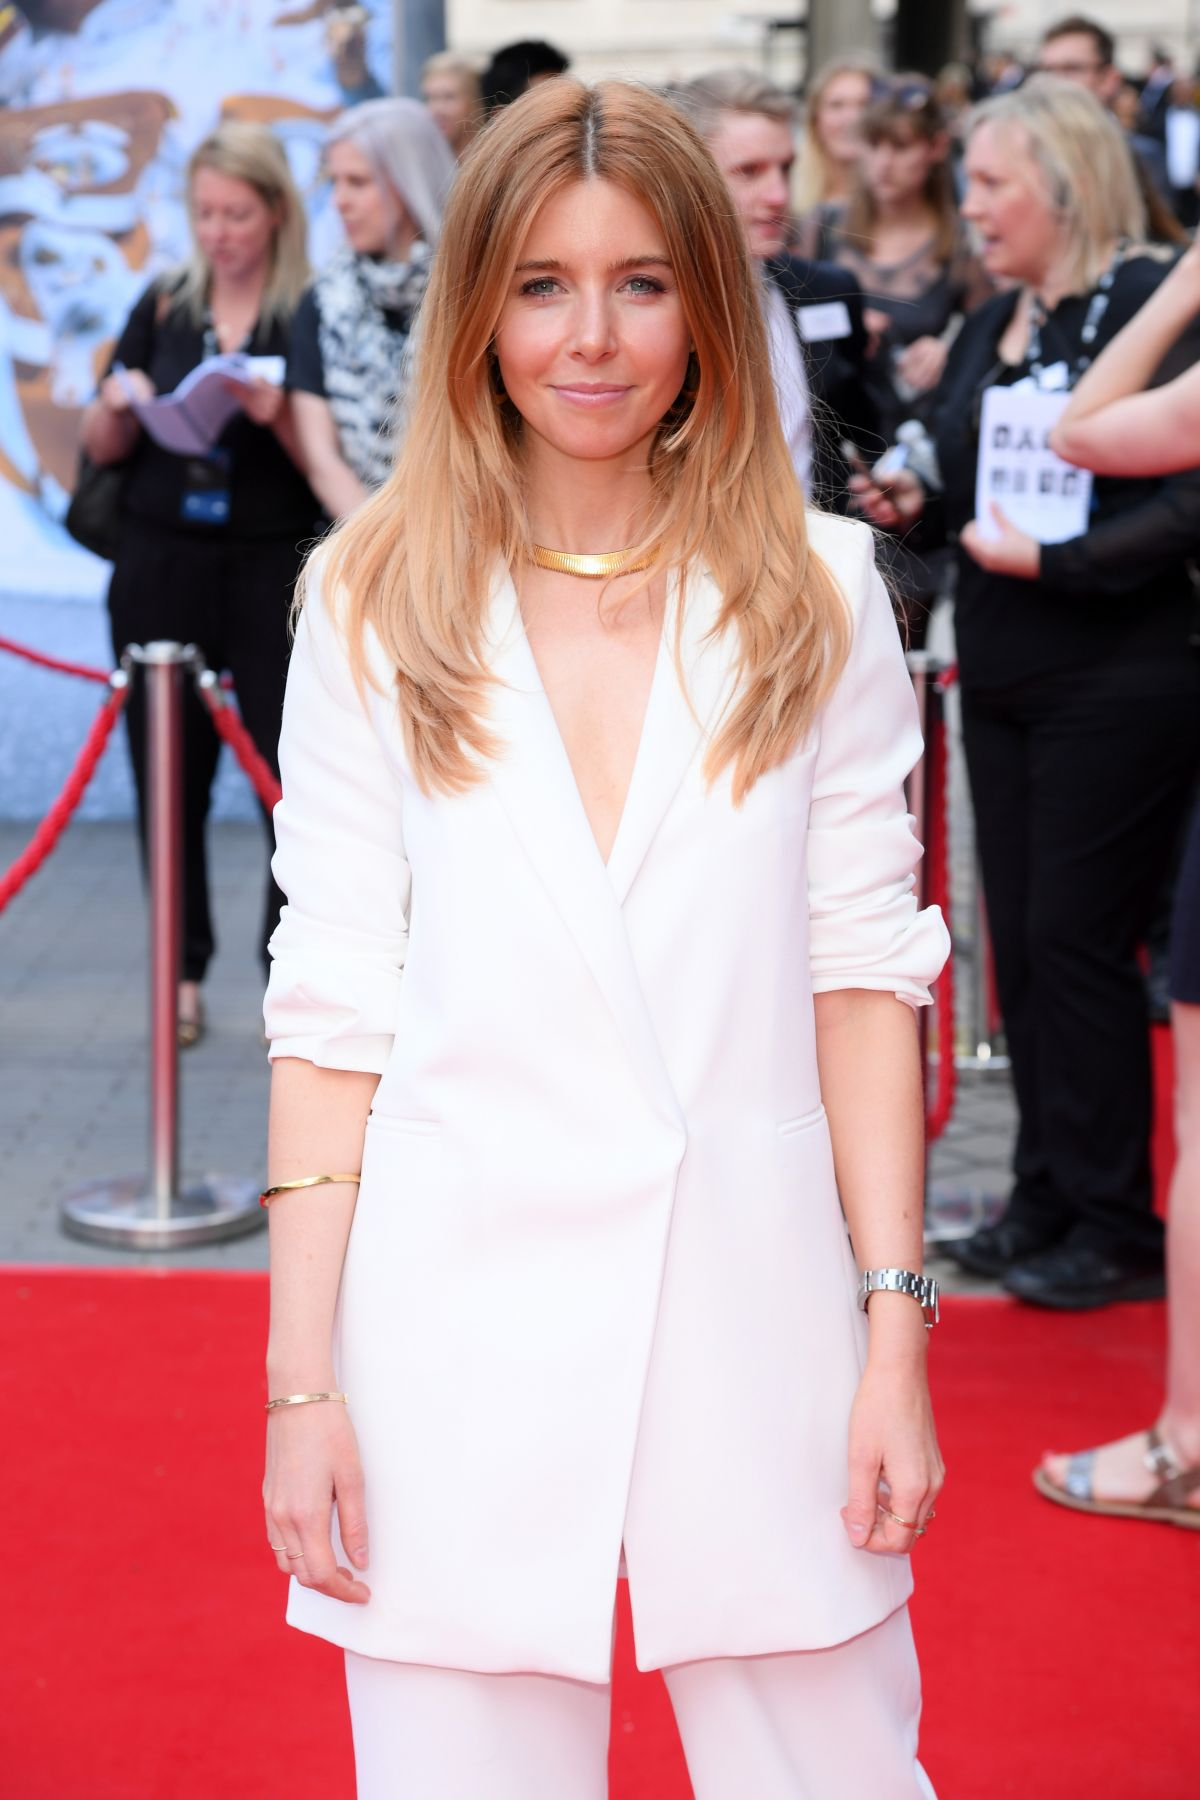 STACEY DOOLEY at 2017 British Academy Television Awards in London 05/14/2017